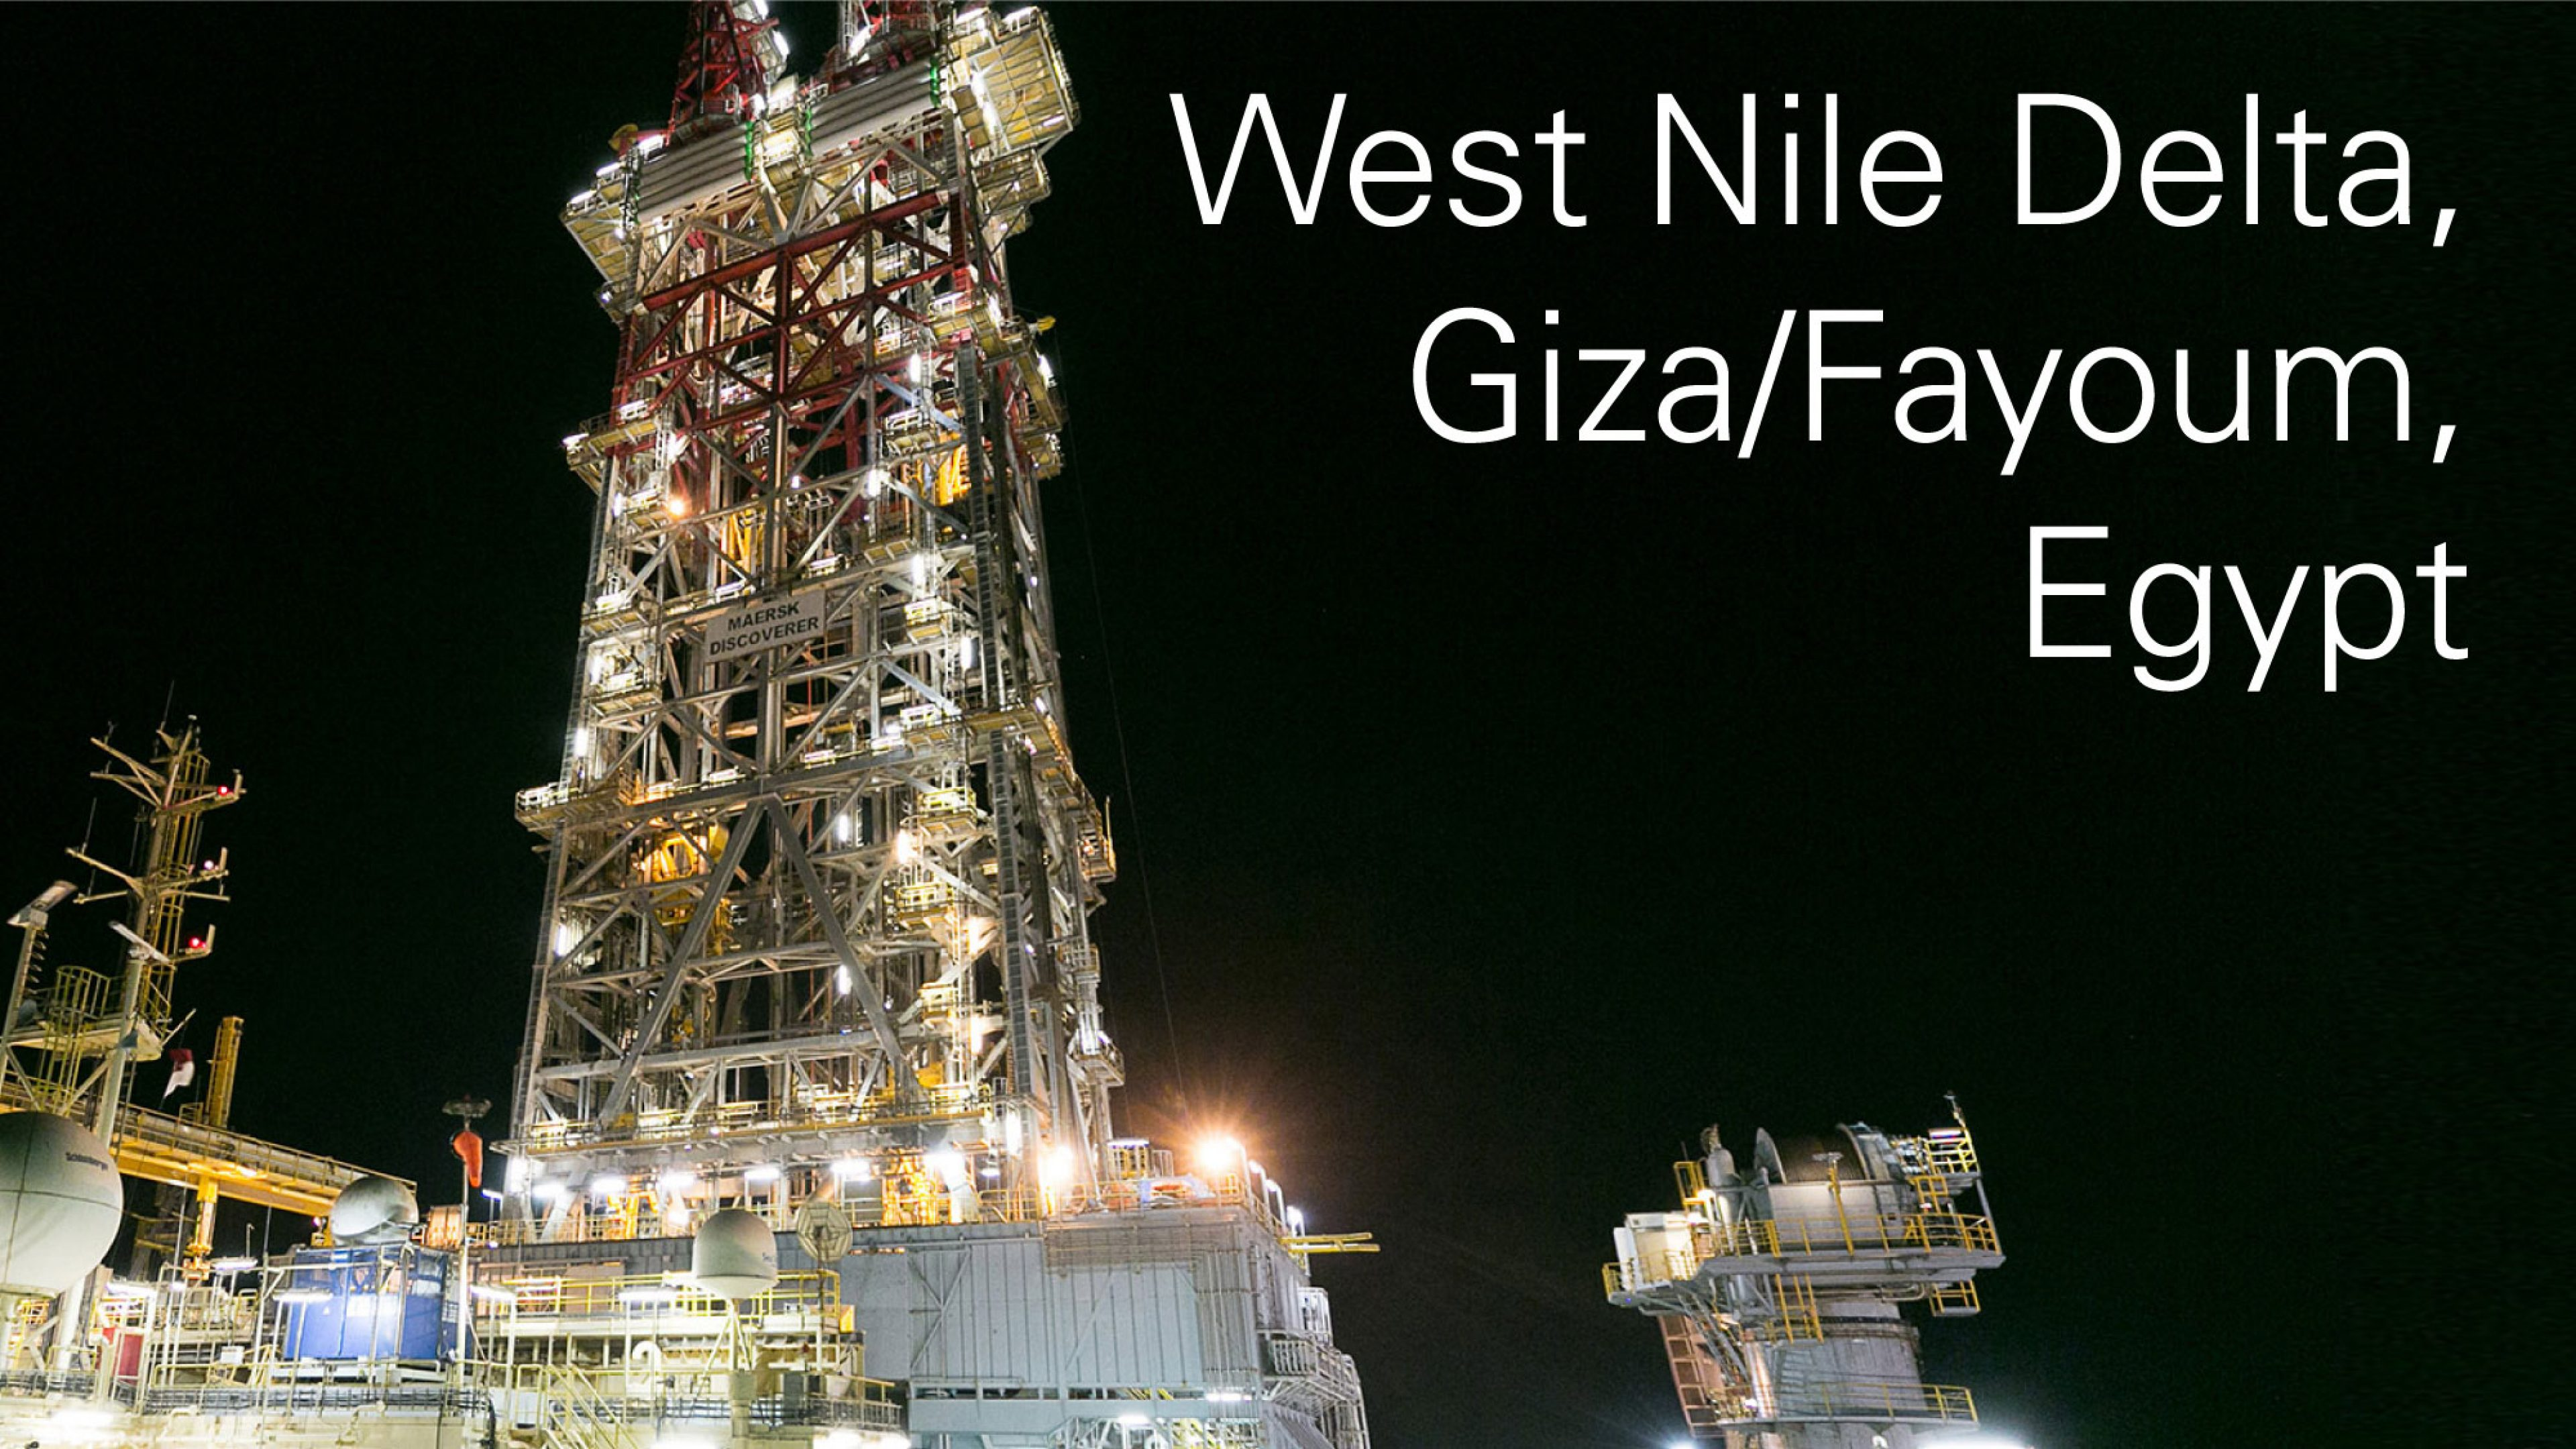 West Nile Delta – Giza / Fayoum, Egypt